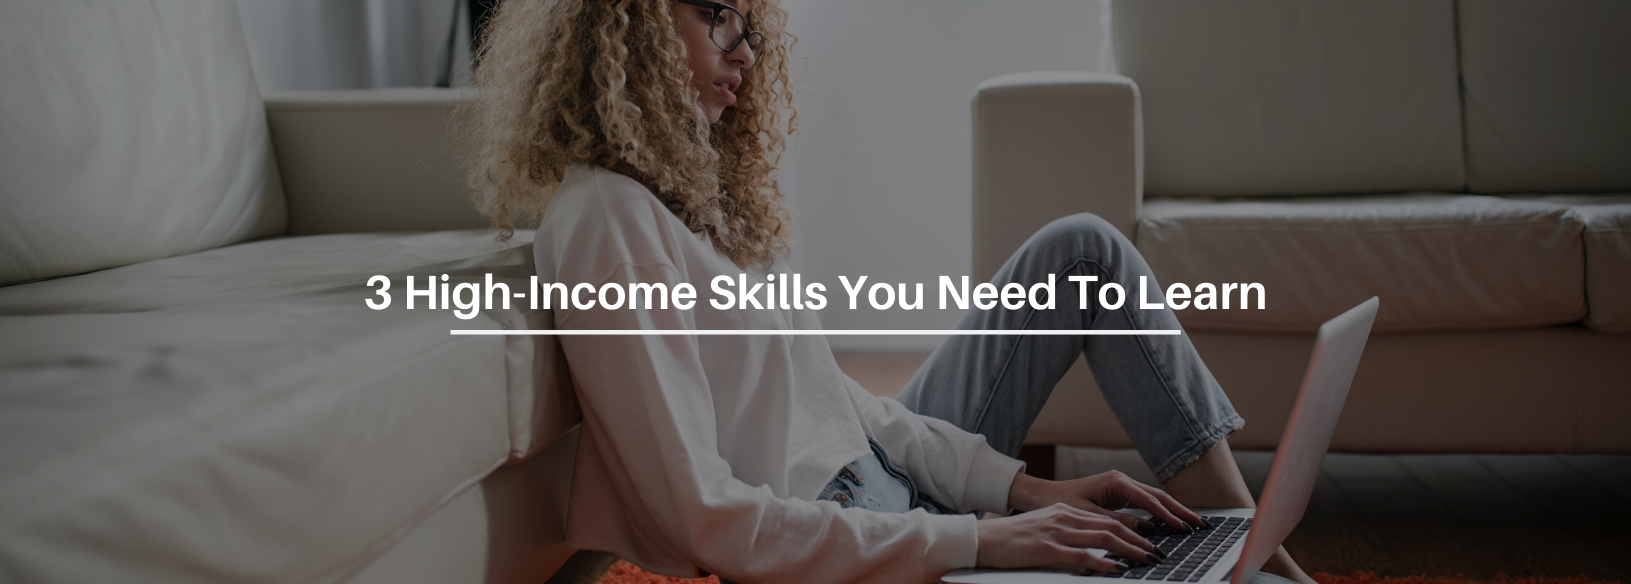 3 High-Income Skills That Will Wildly Grow Your Business